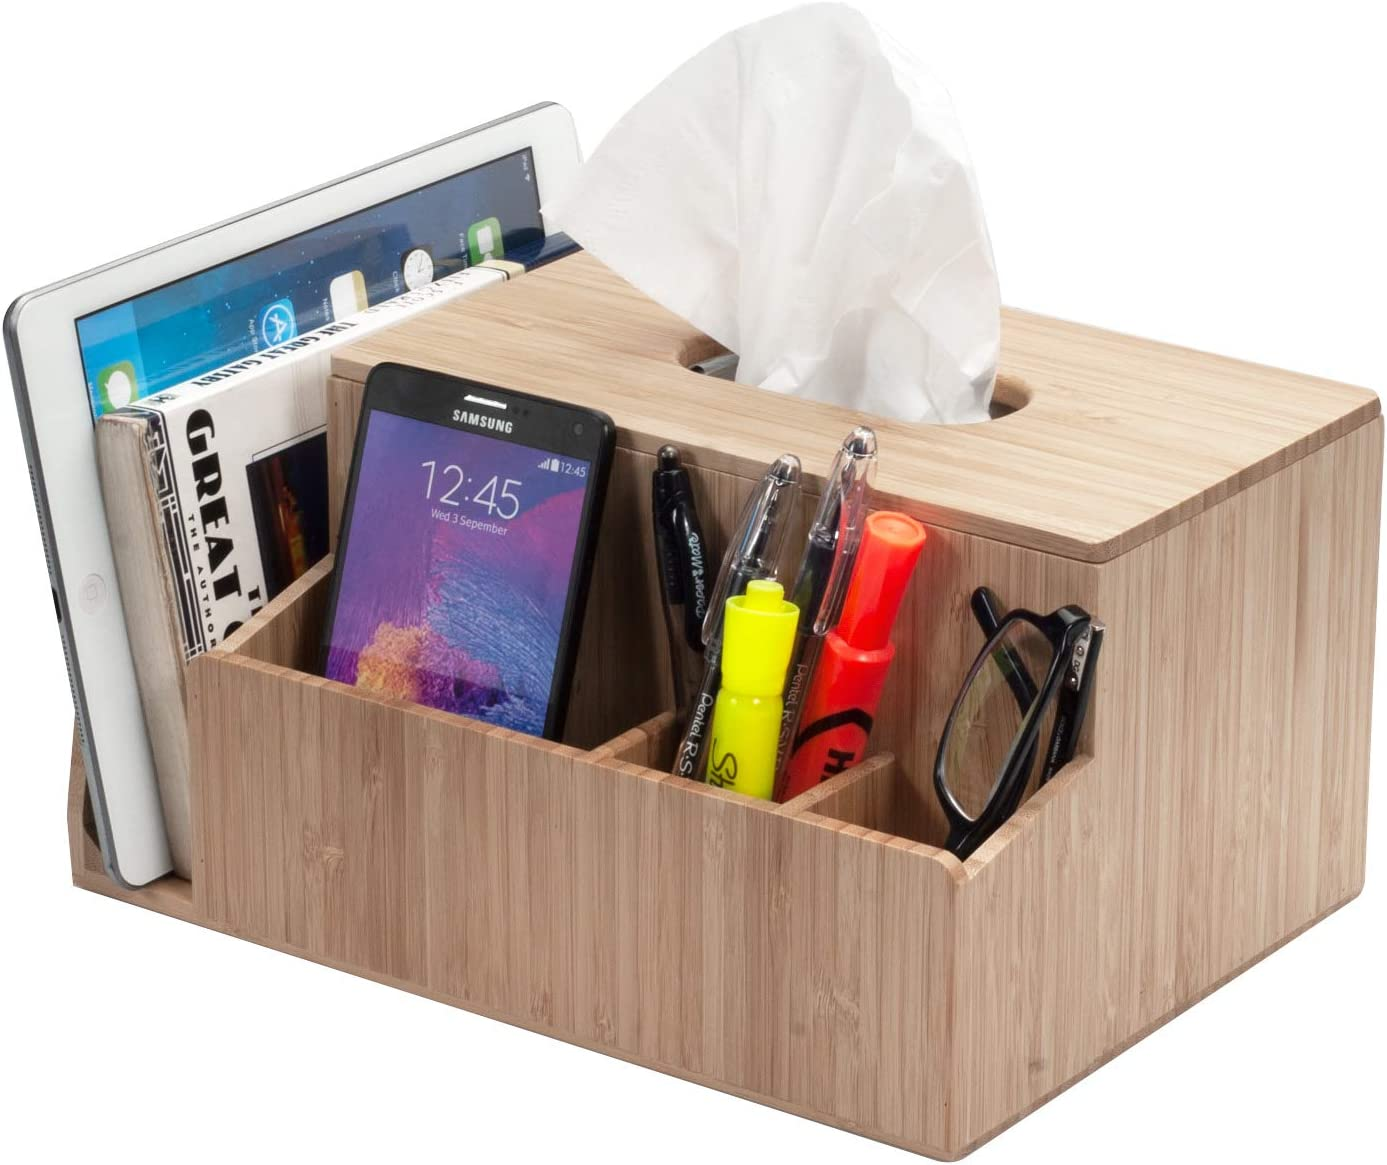 MobileVision Bamboo Tissue Box Holder & Tablet Stand Organizer for Bedroom & Desktop; compartments Hold iPad Phones Remote Controls Reading Glasses Notepads & Pens